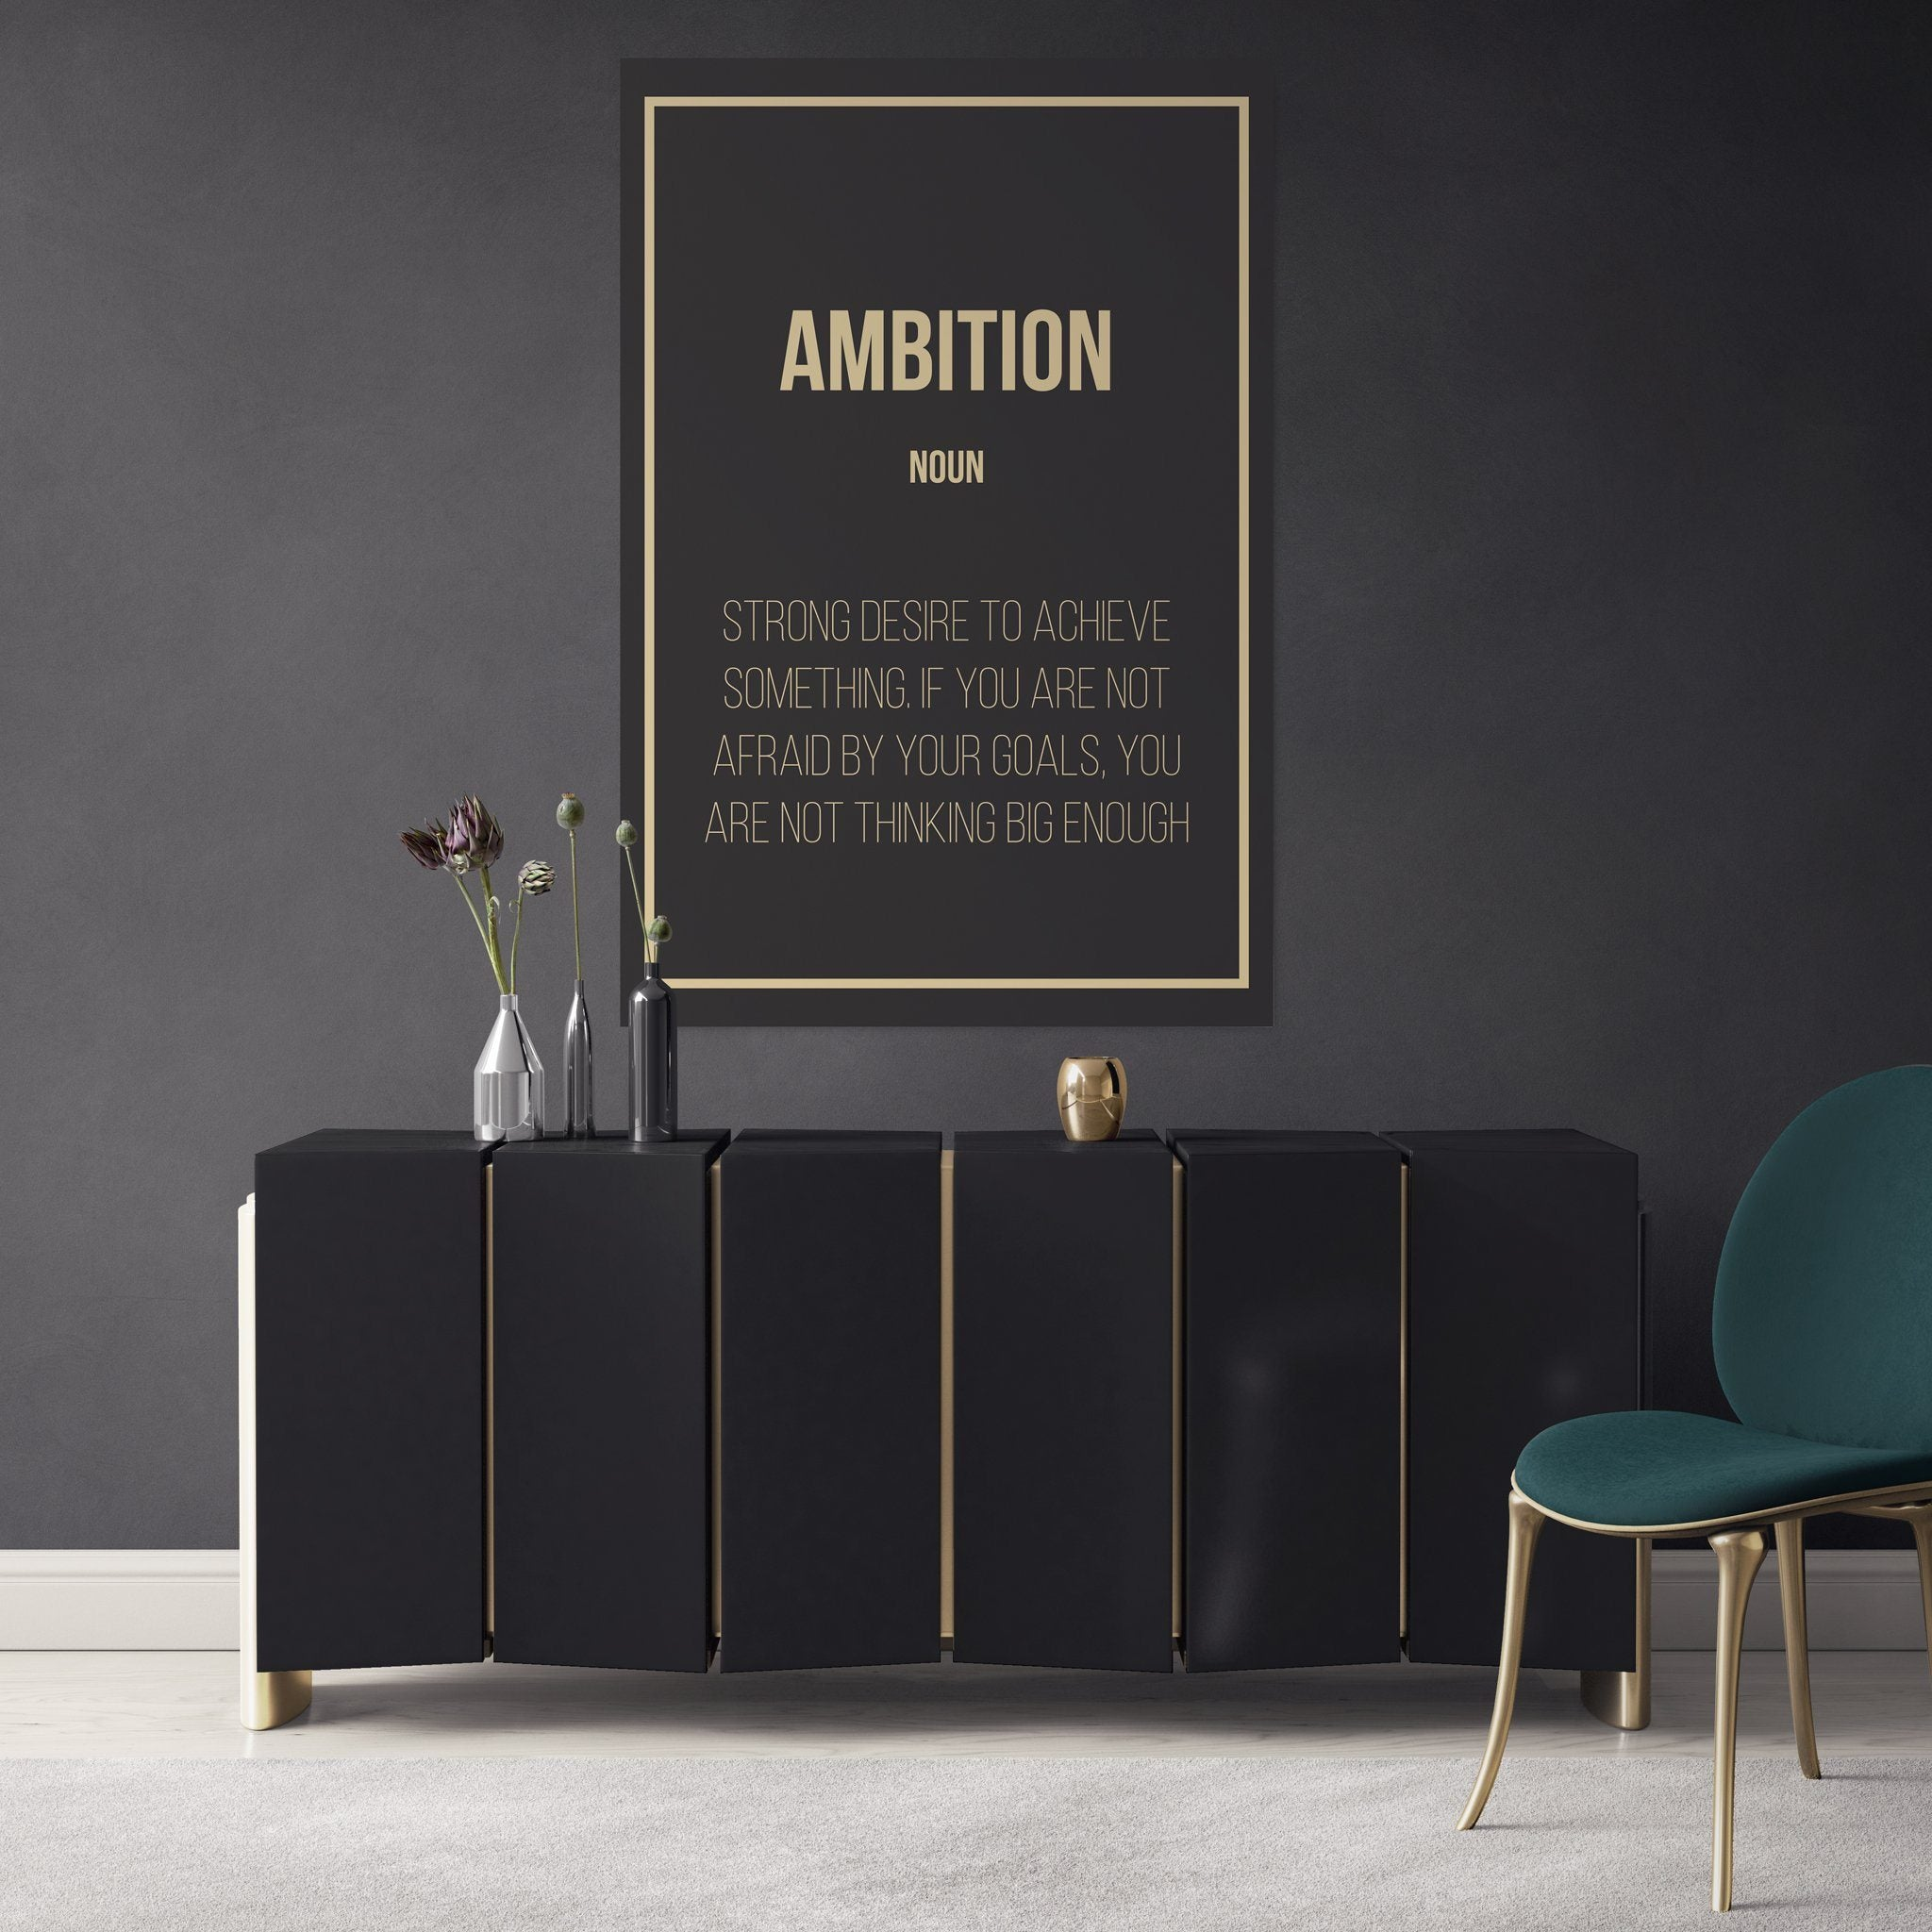 Ambition - Definition entrepreneur in the office